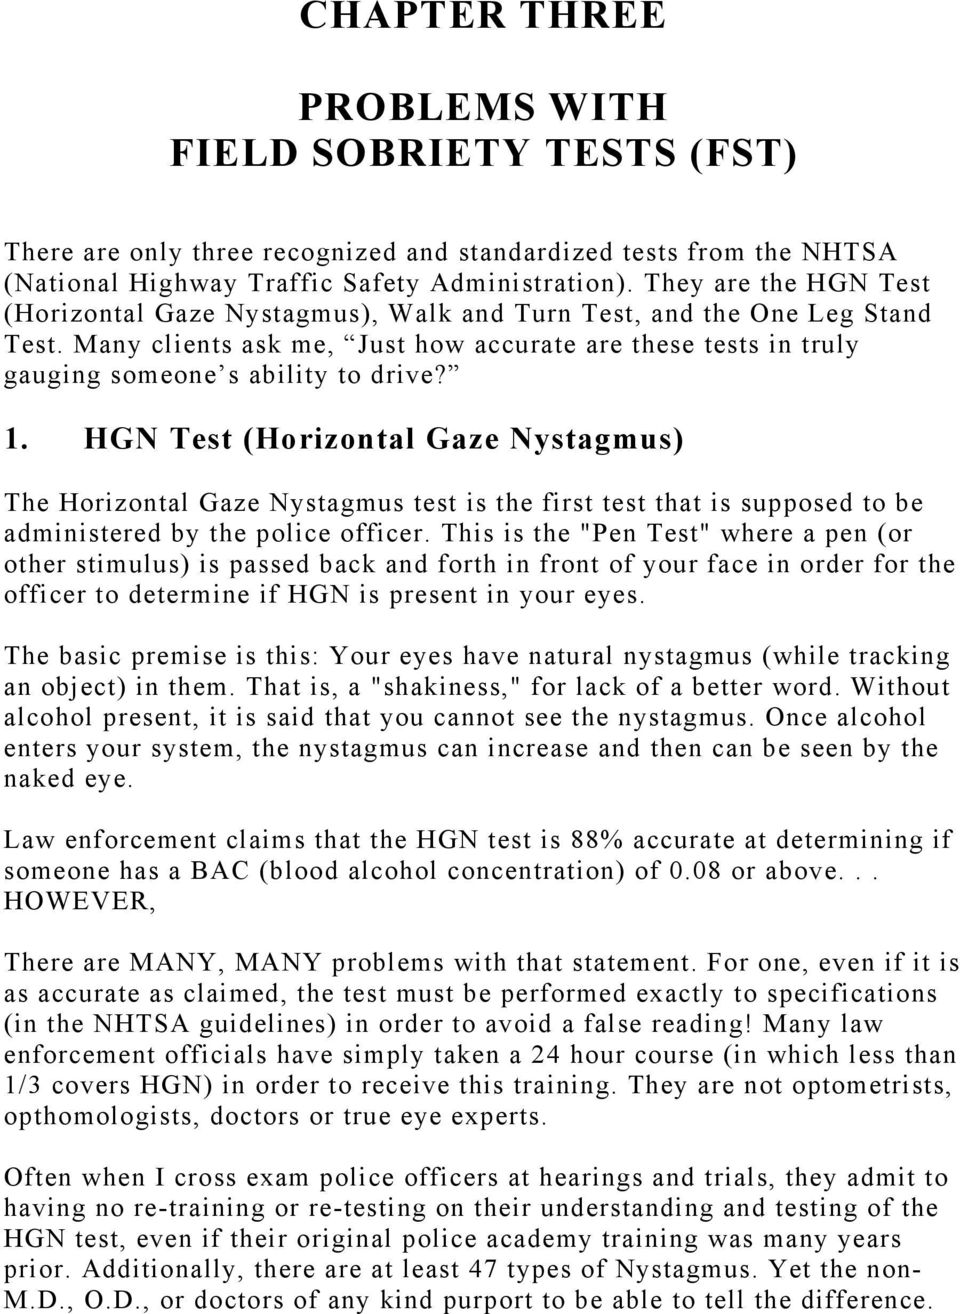 1. HGN Test (Horizontal Gaze Nystagmus) The Horizontal Gaze Nystagmus test is the first test that is supposed to be administered by the police officer.